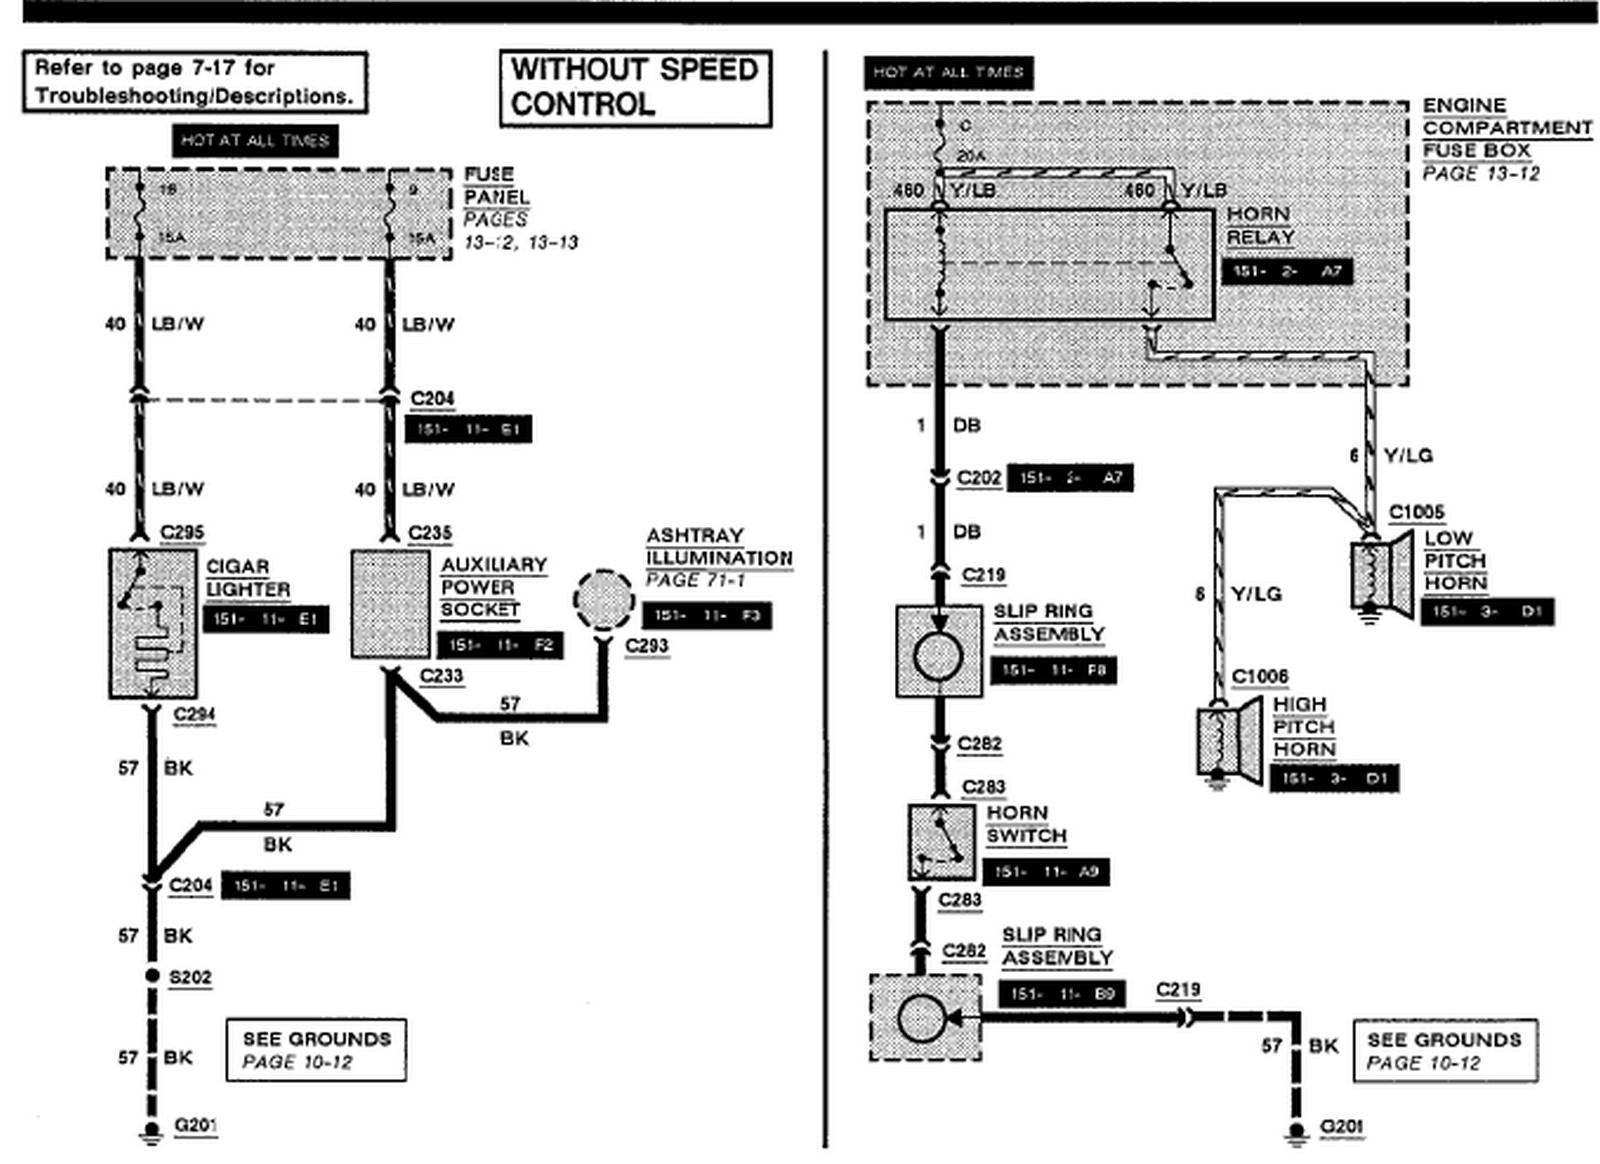 1992 Ford F150 Starter Wiring Diagram · 1992 Ford Ranger Fuse Box Diagram